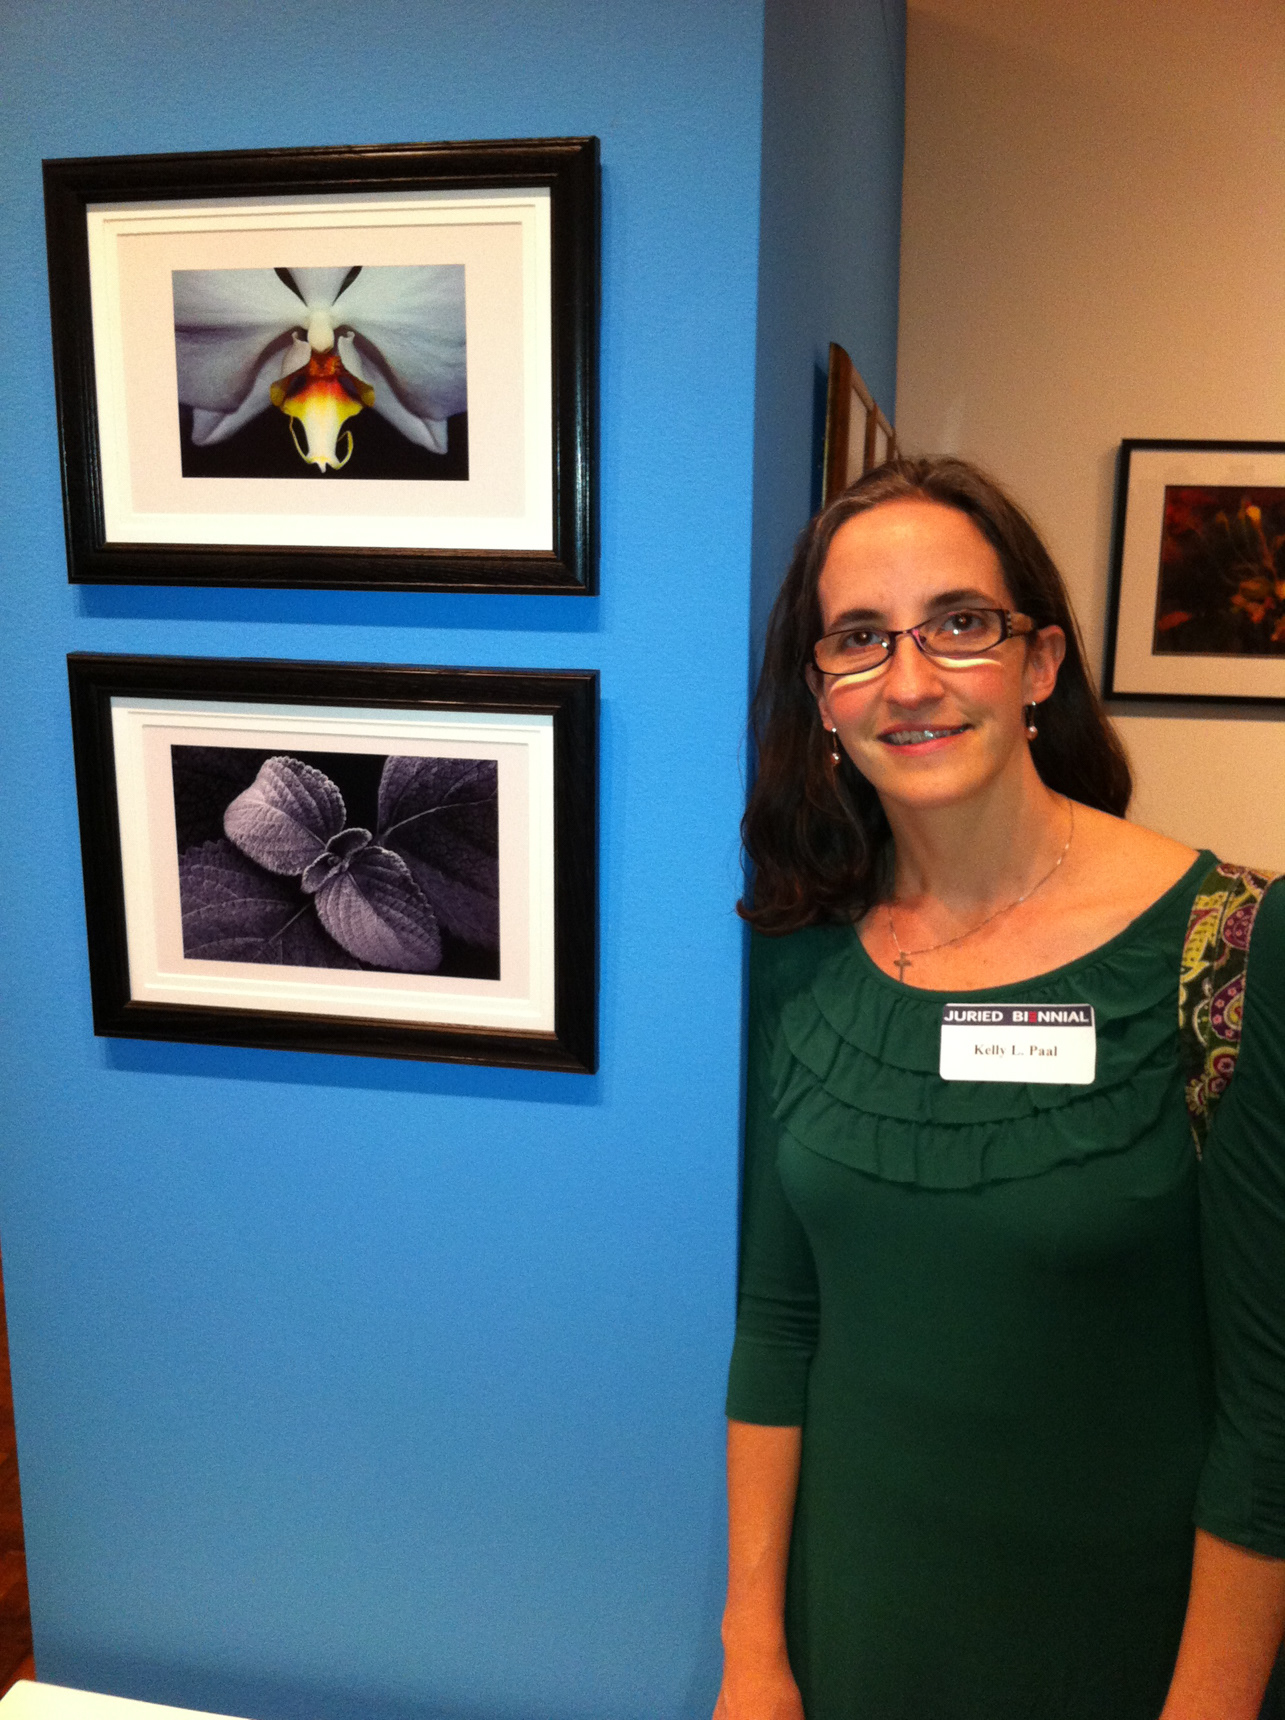 Kelly Paal at Westmoreland Museum of American Art with 2 of her photos.